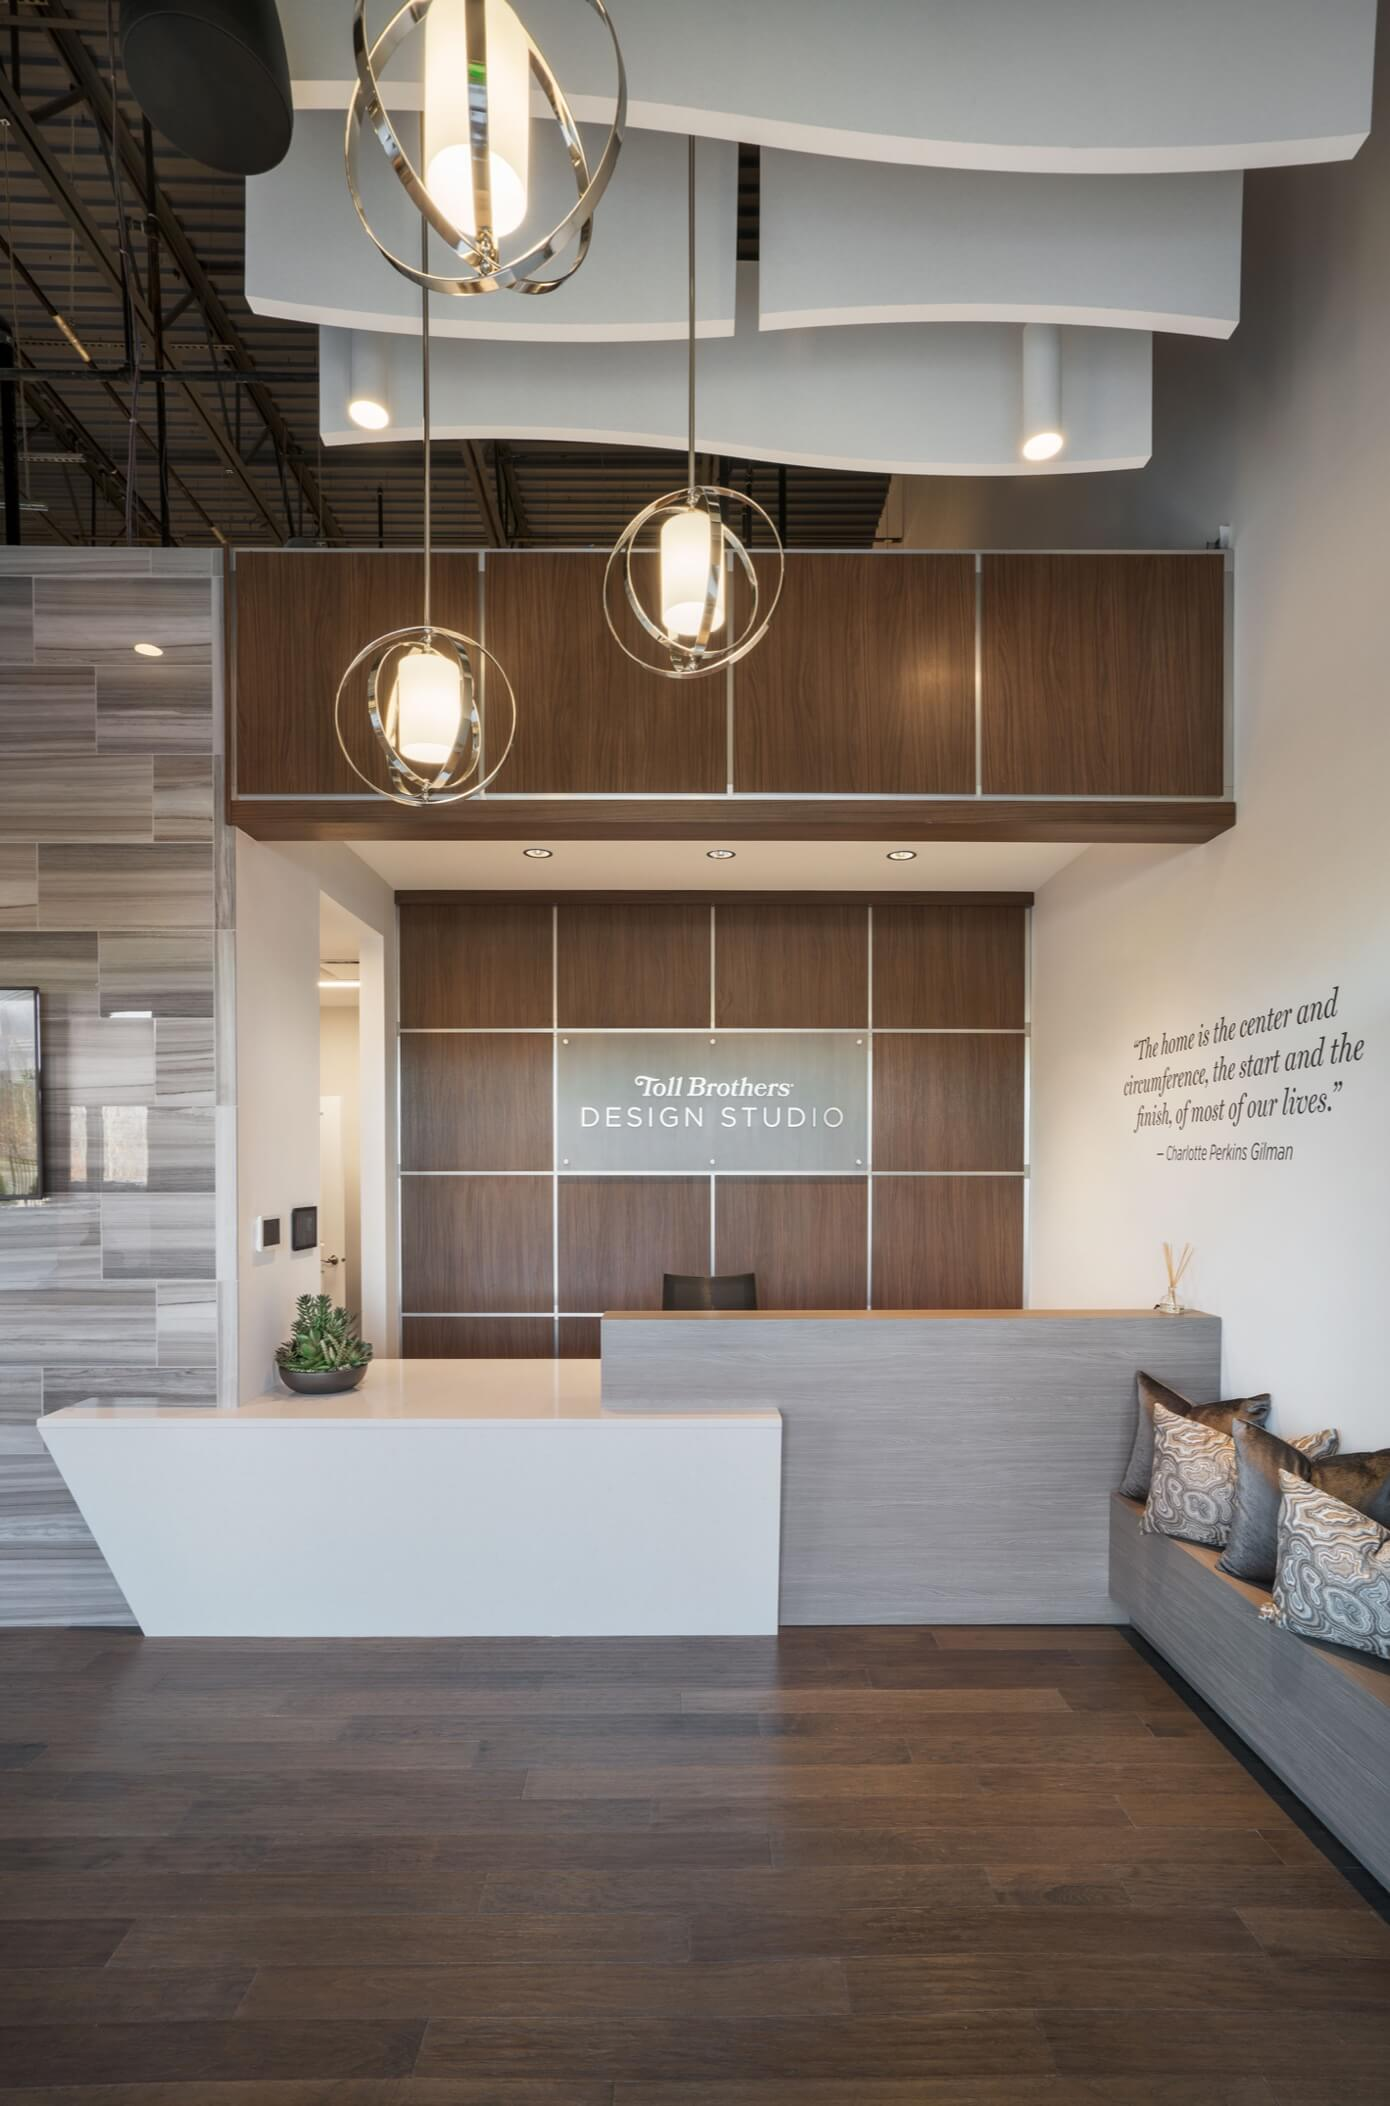 Toll Brothers Design Studio lobby